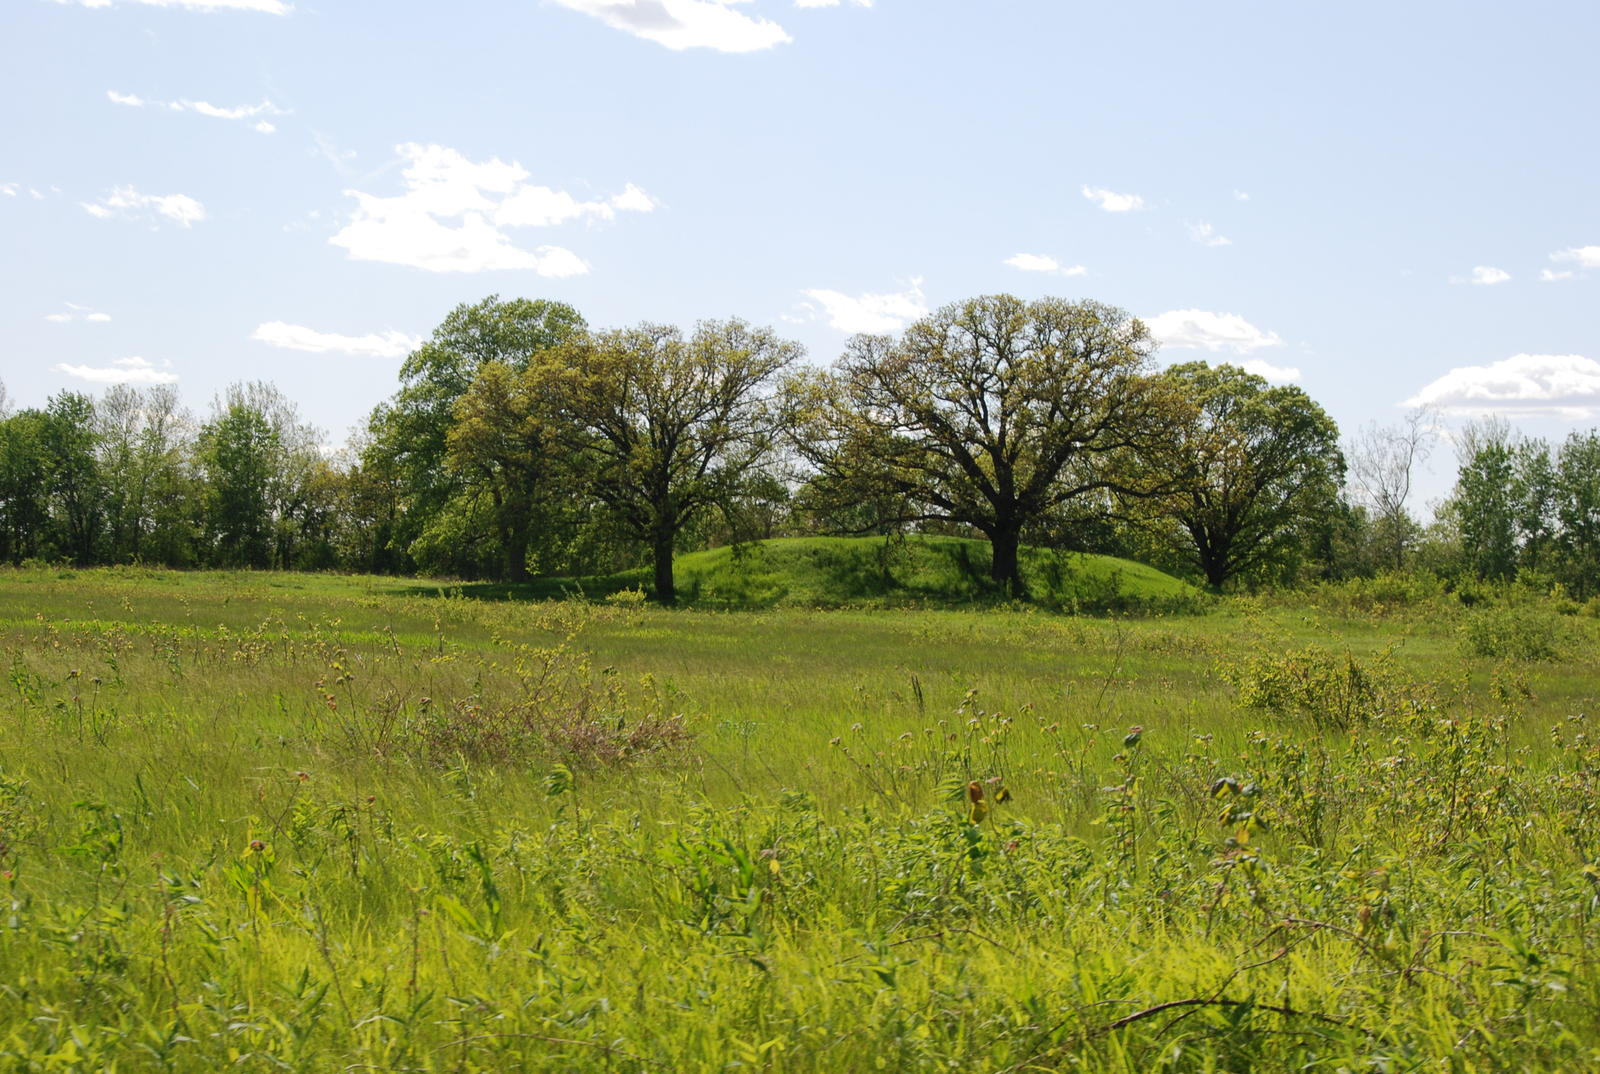 Dickson Mound by MattHucke [CC BY-SA (https://creativecommons.org/licenses/by-sa/3.0)]